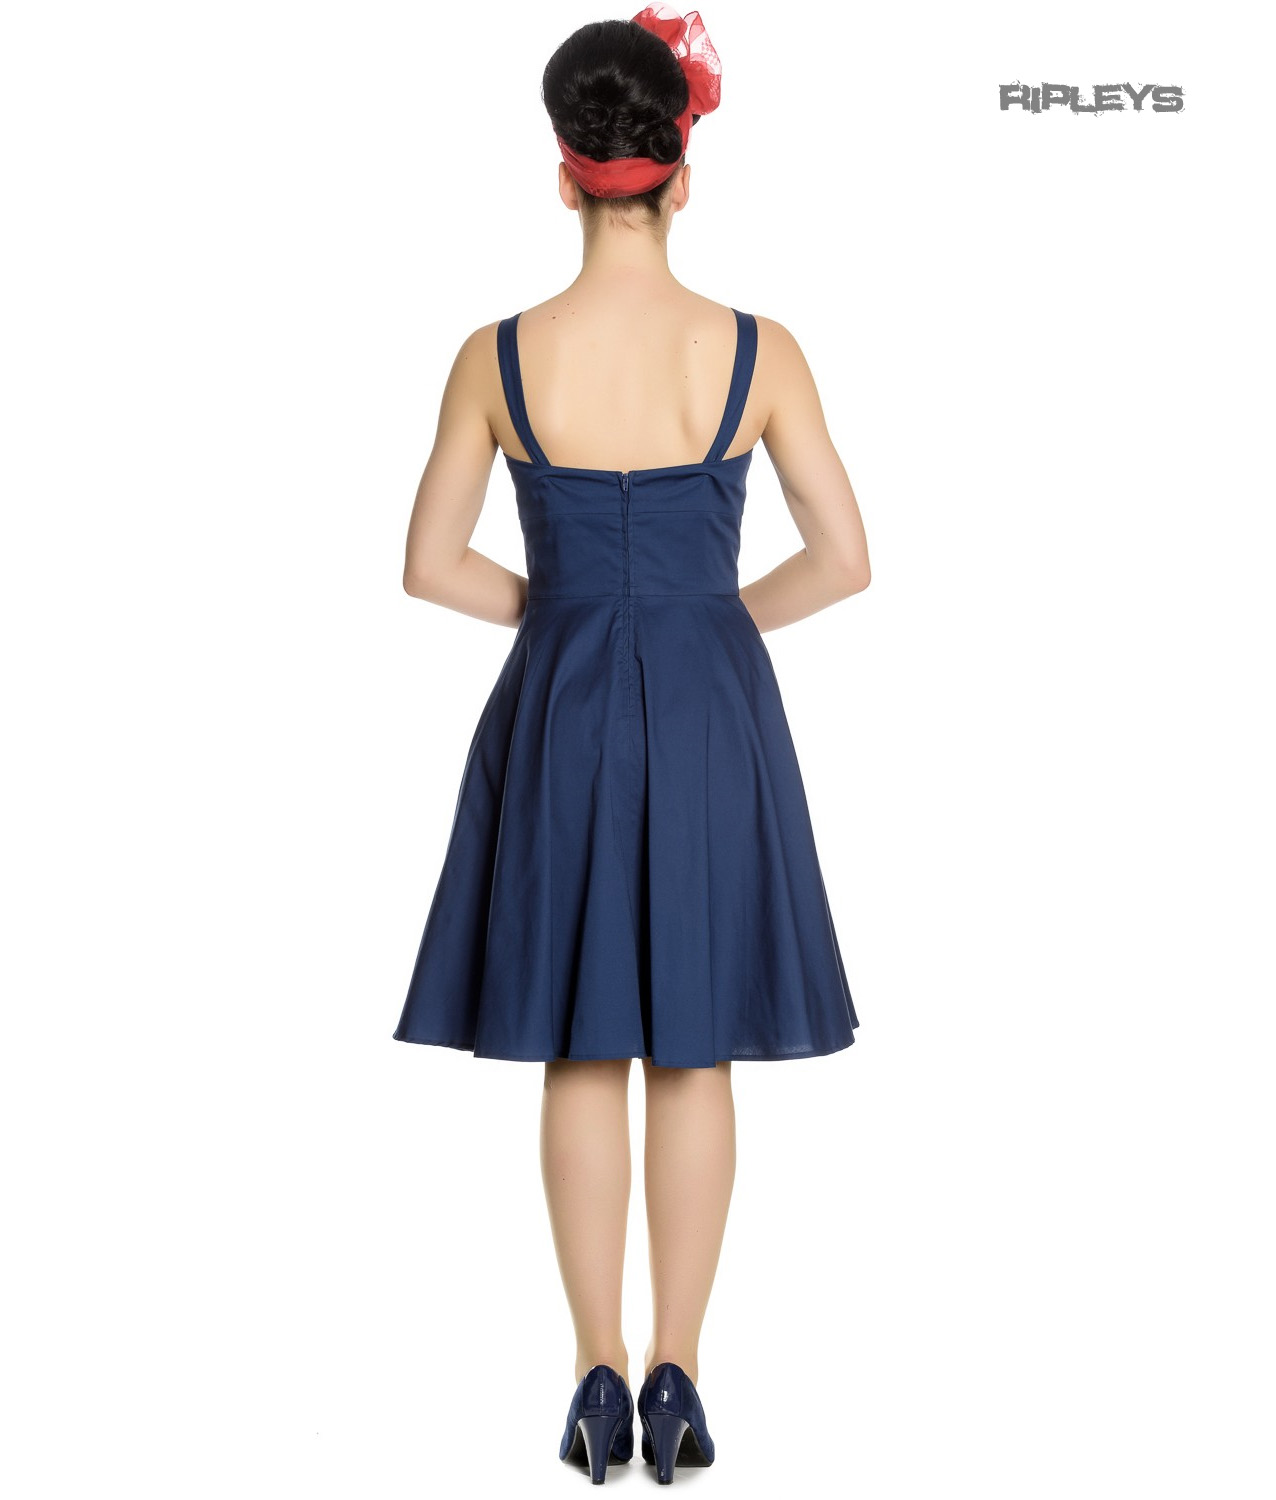 Hell-Bunny-Vintage-50s-Pin-Up-Dress-Navy-Blue-SELA-Nautical-Anchors-All-Sizes thumbnail 20